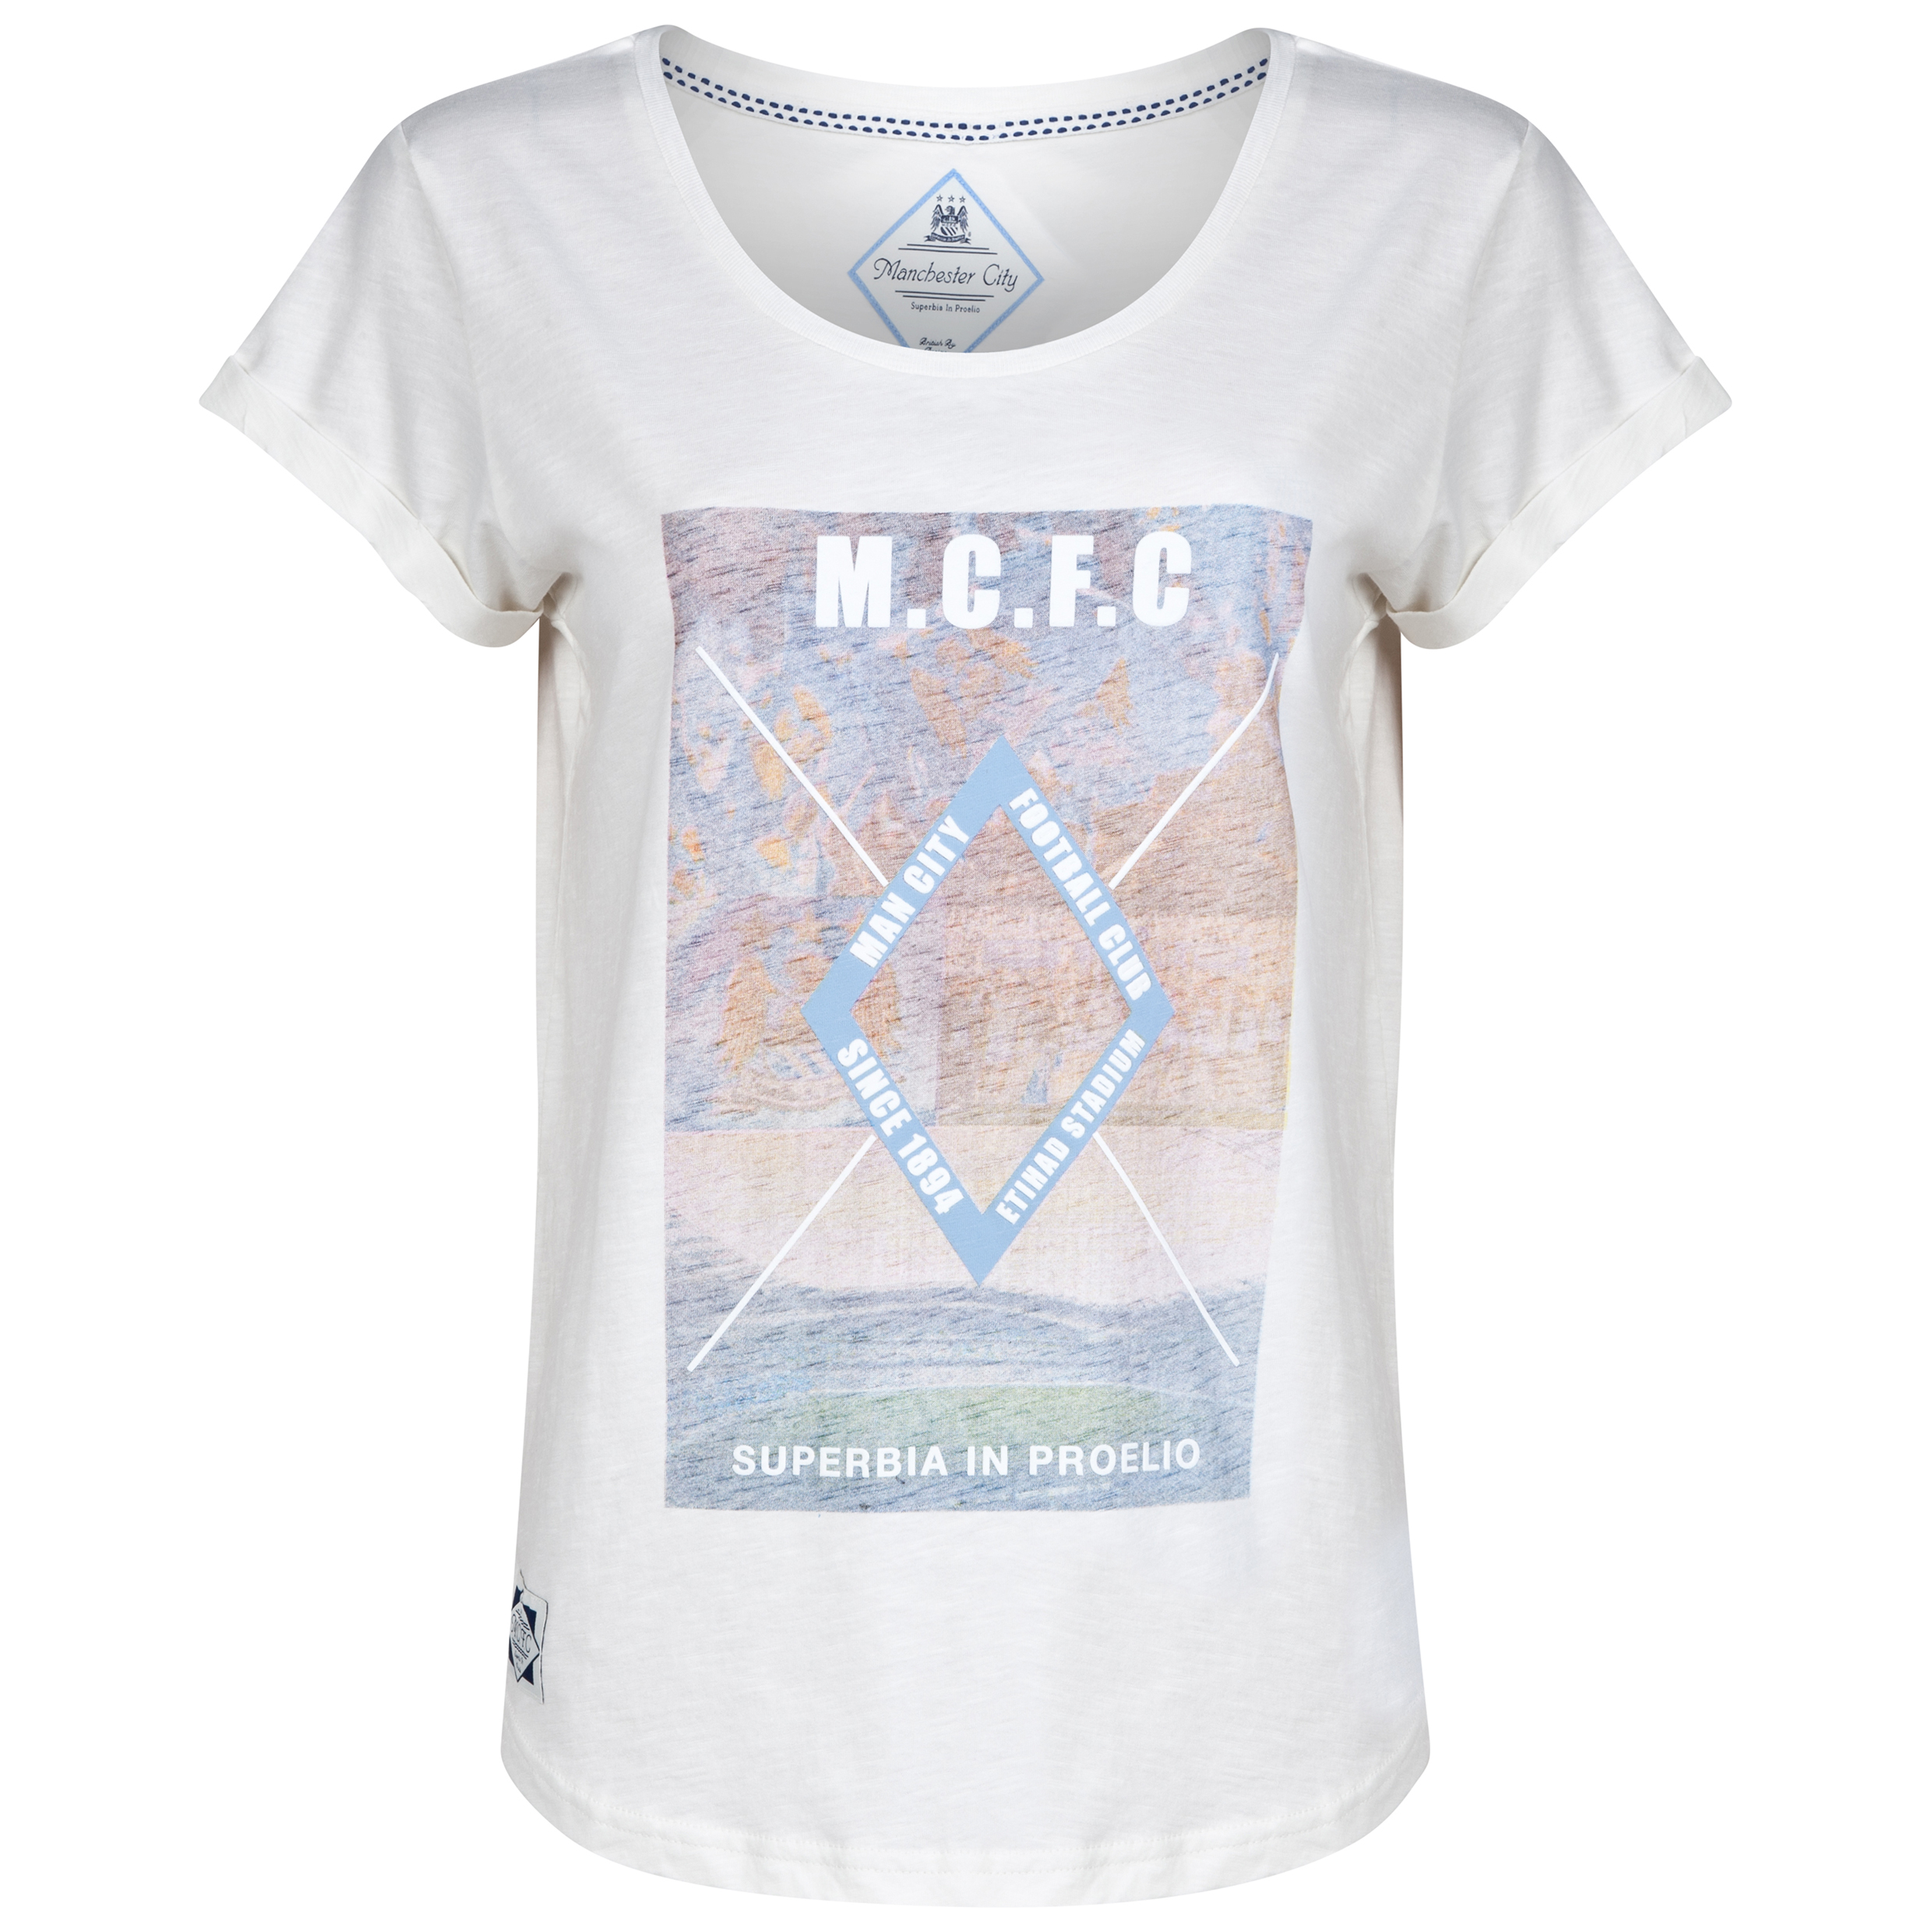 Manchester City T-Shirt - Vintage White - Womens